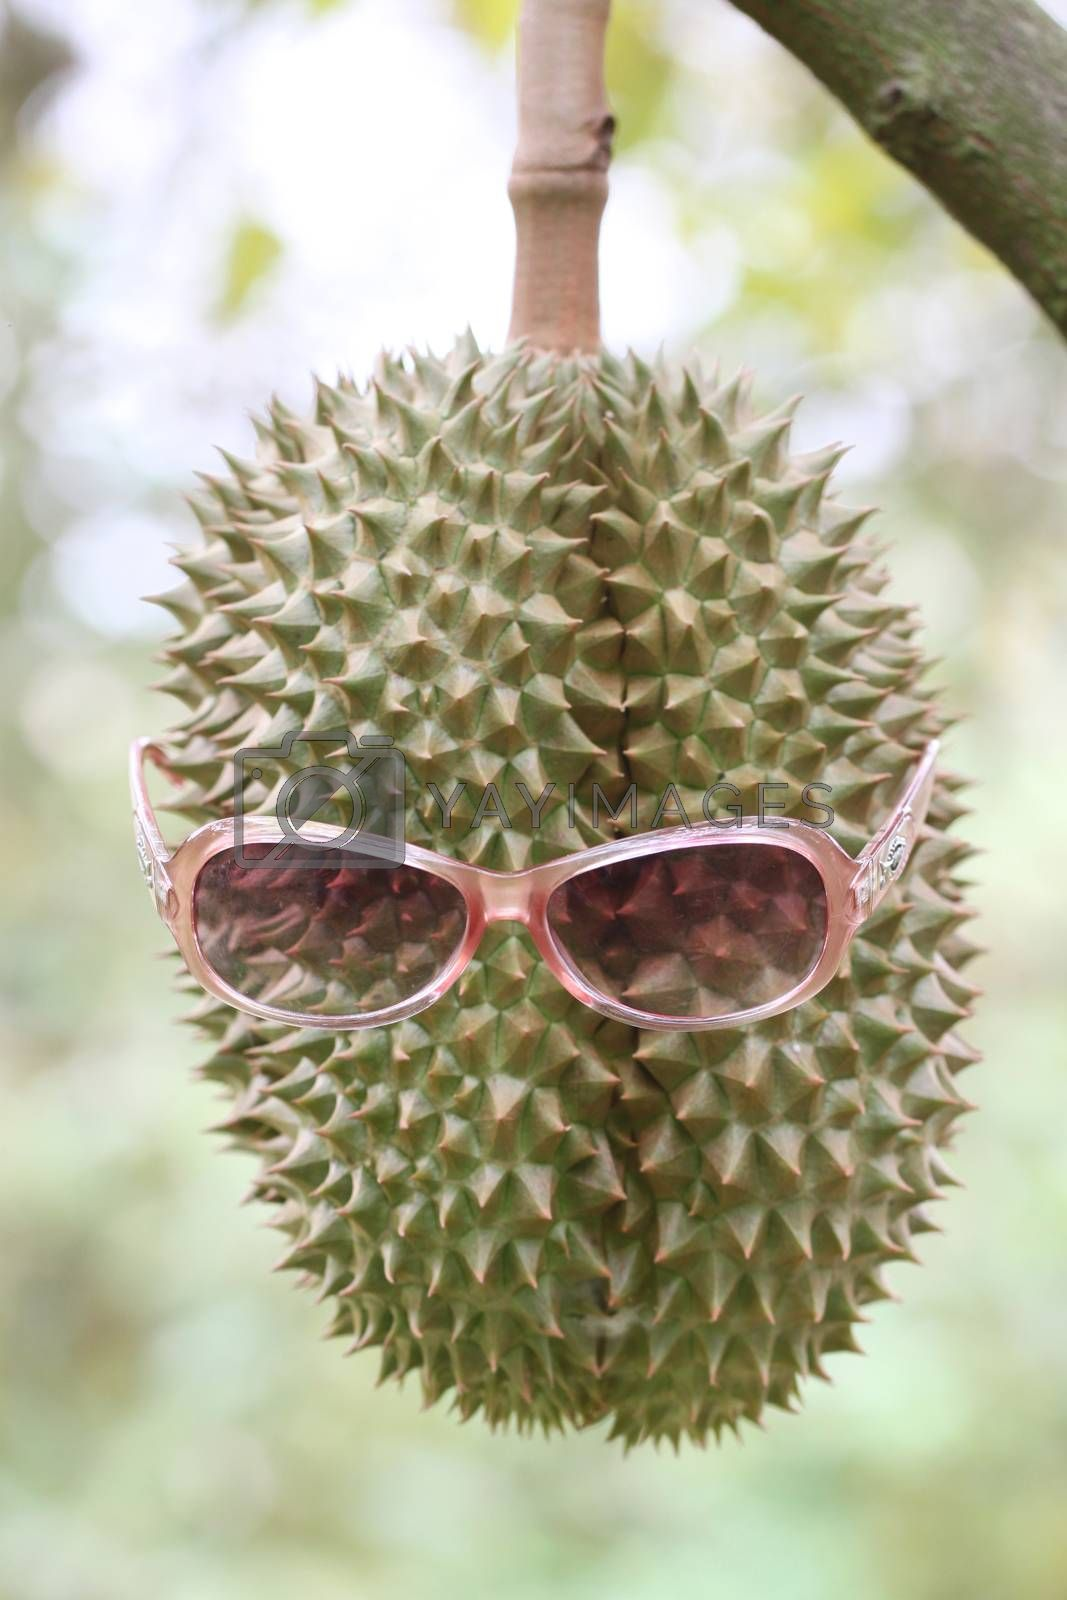 Fresh durian fruit wearing sunglasses on trees in orchards.